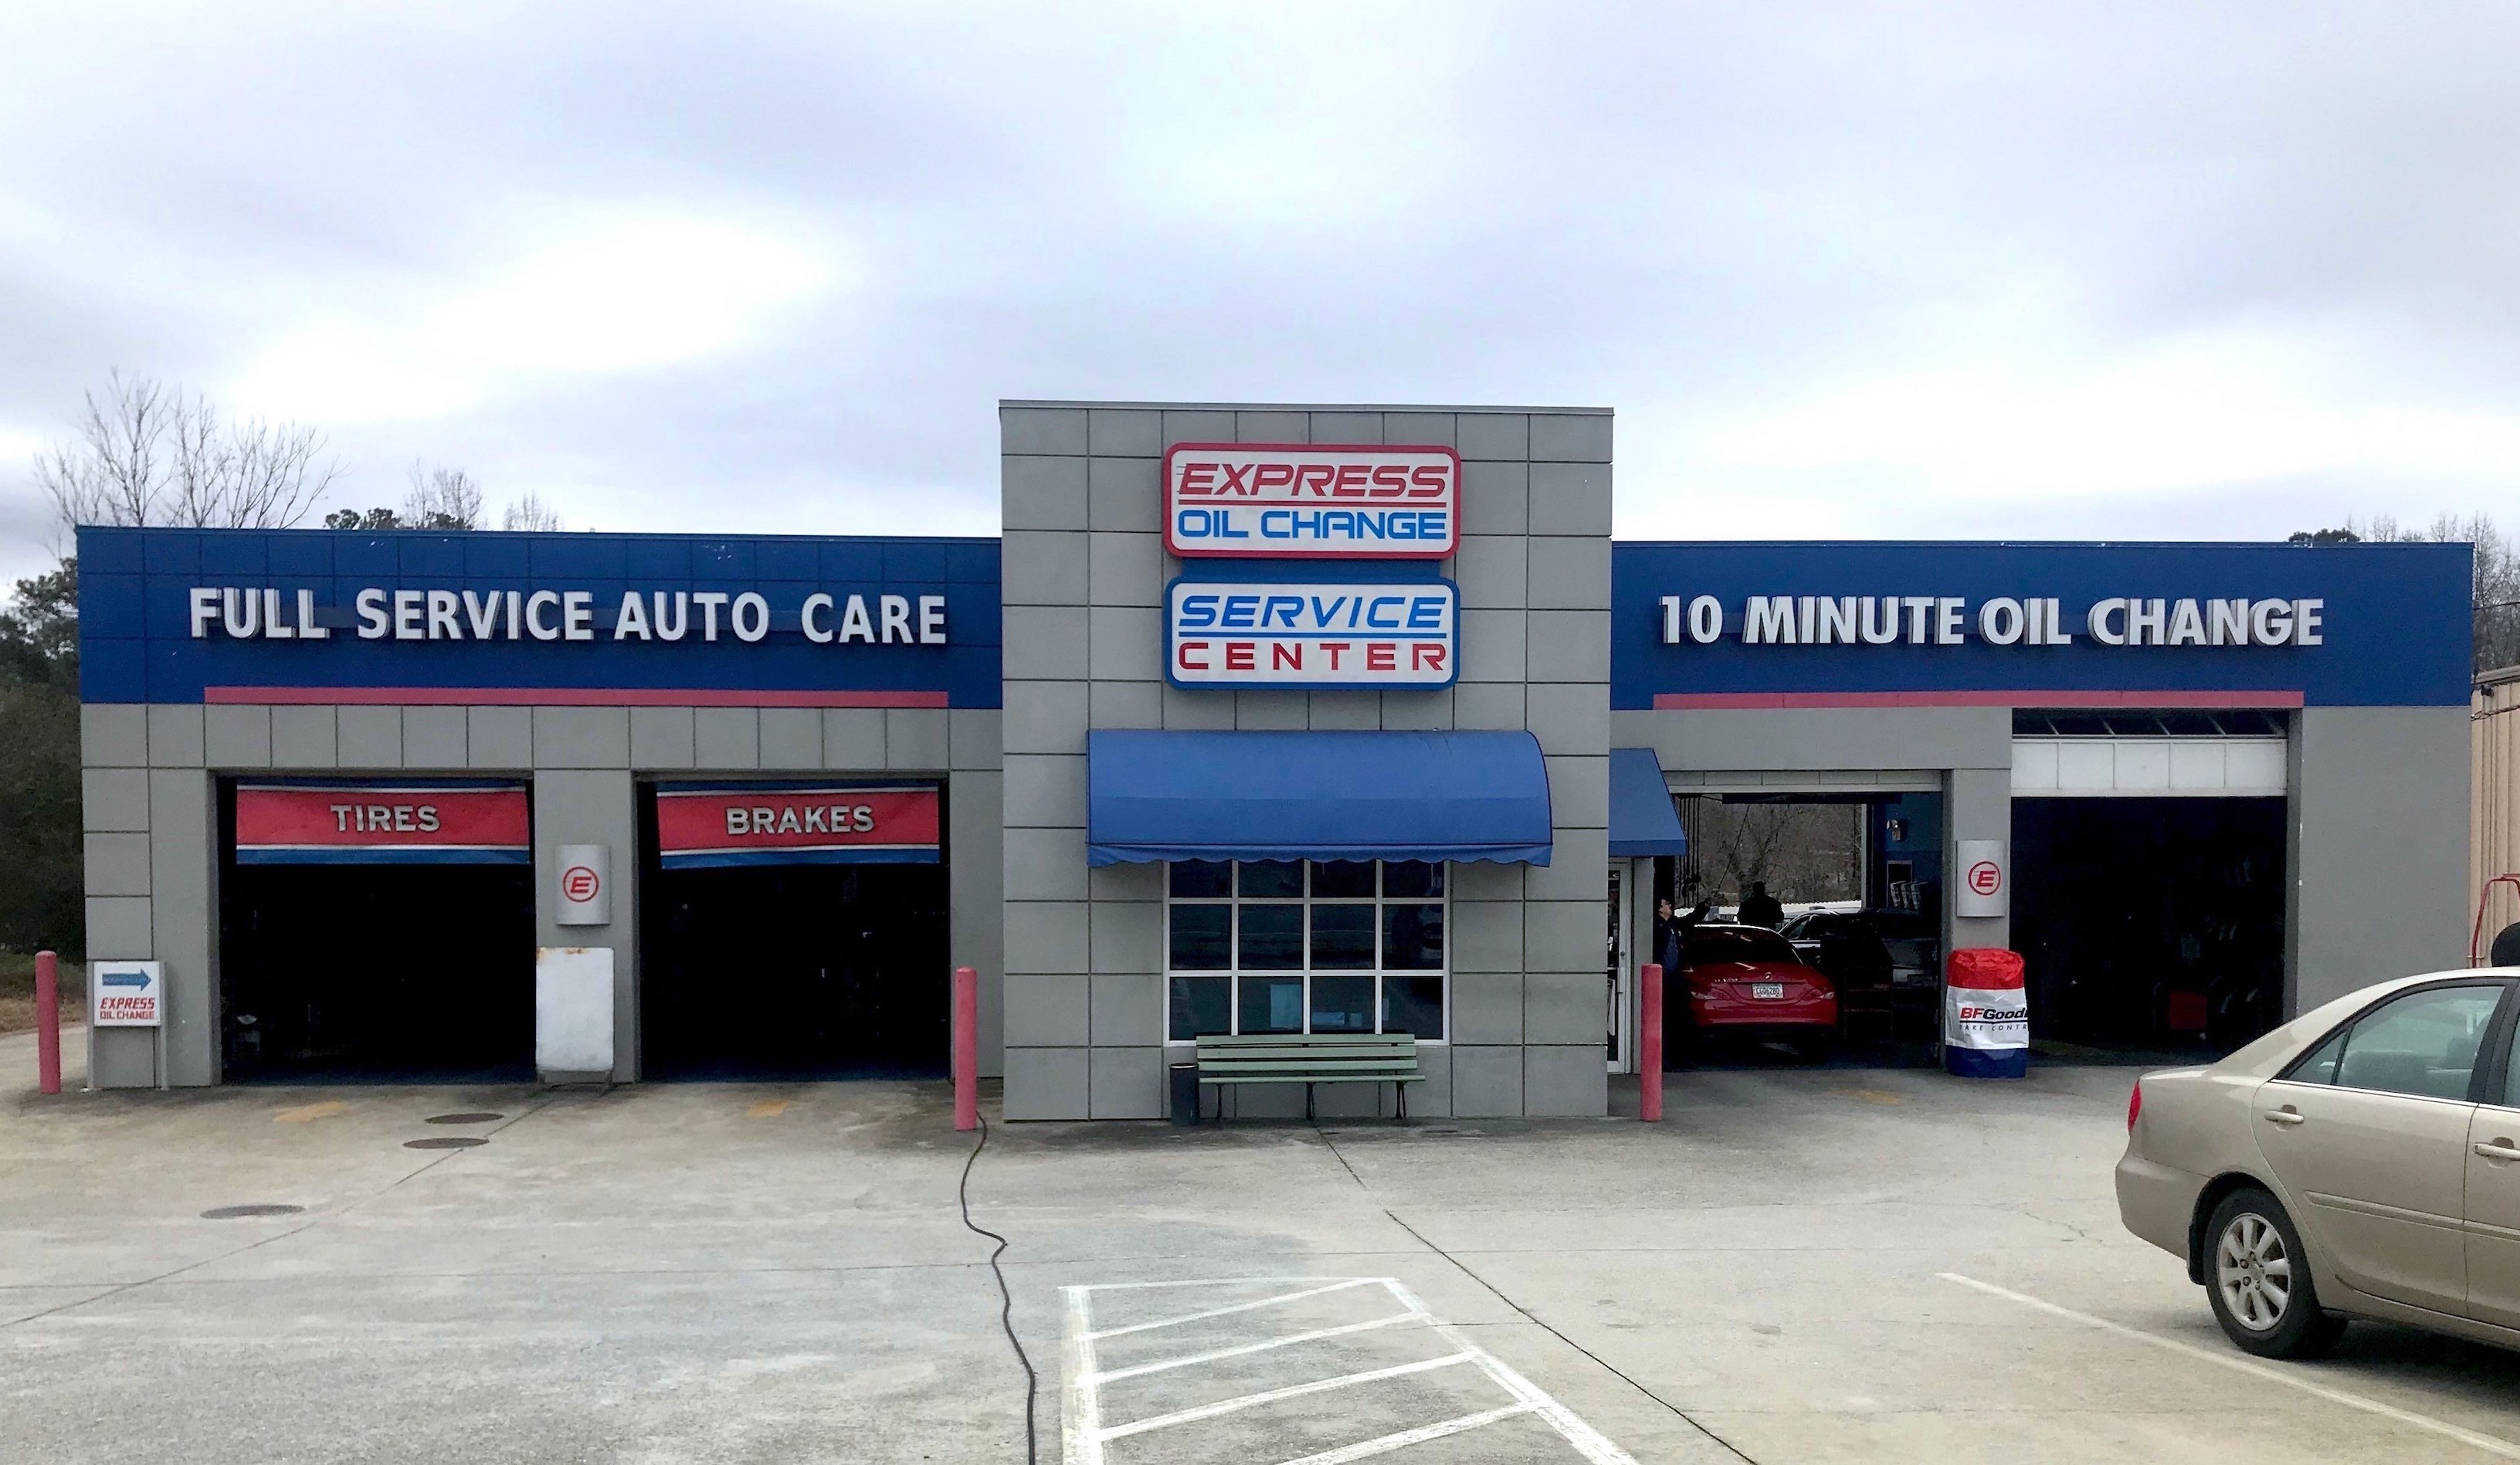 Express Oil Change & Tire Engineers Lawrenceville, GA - West Pike Street store